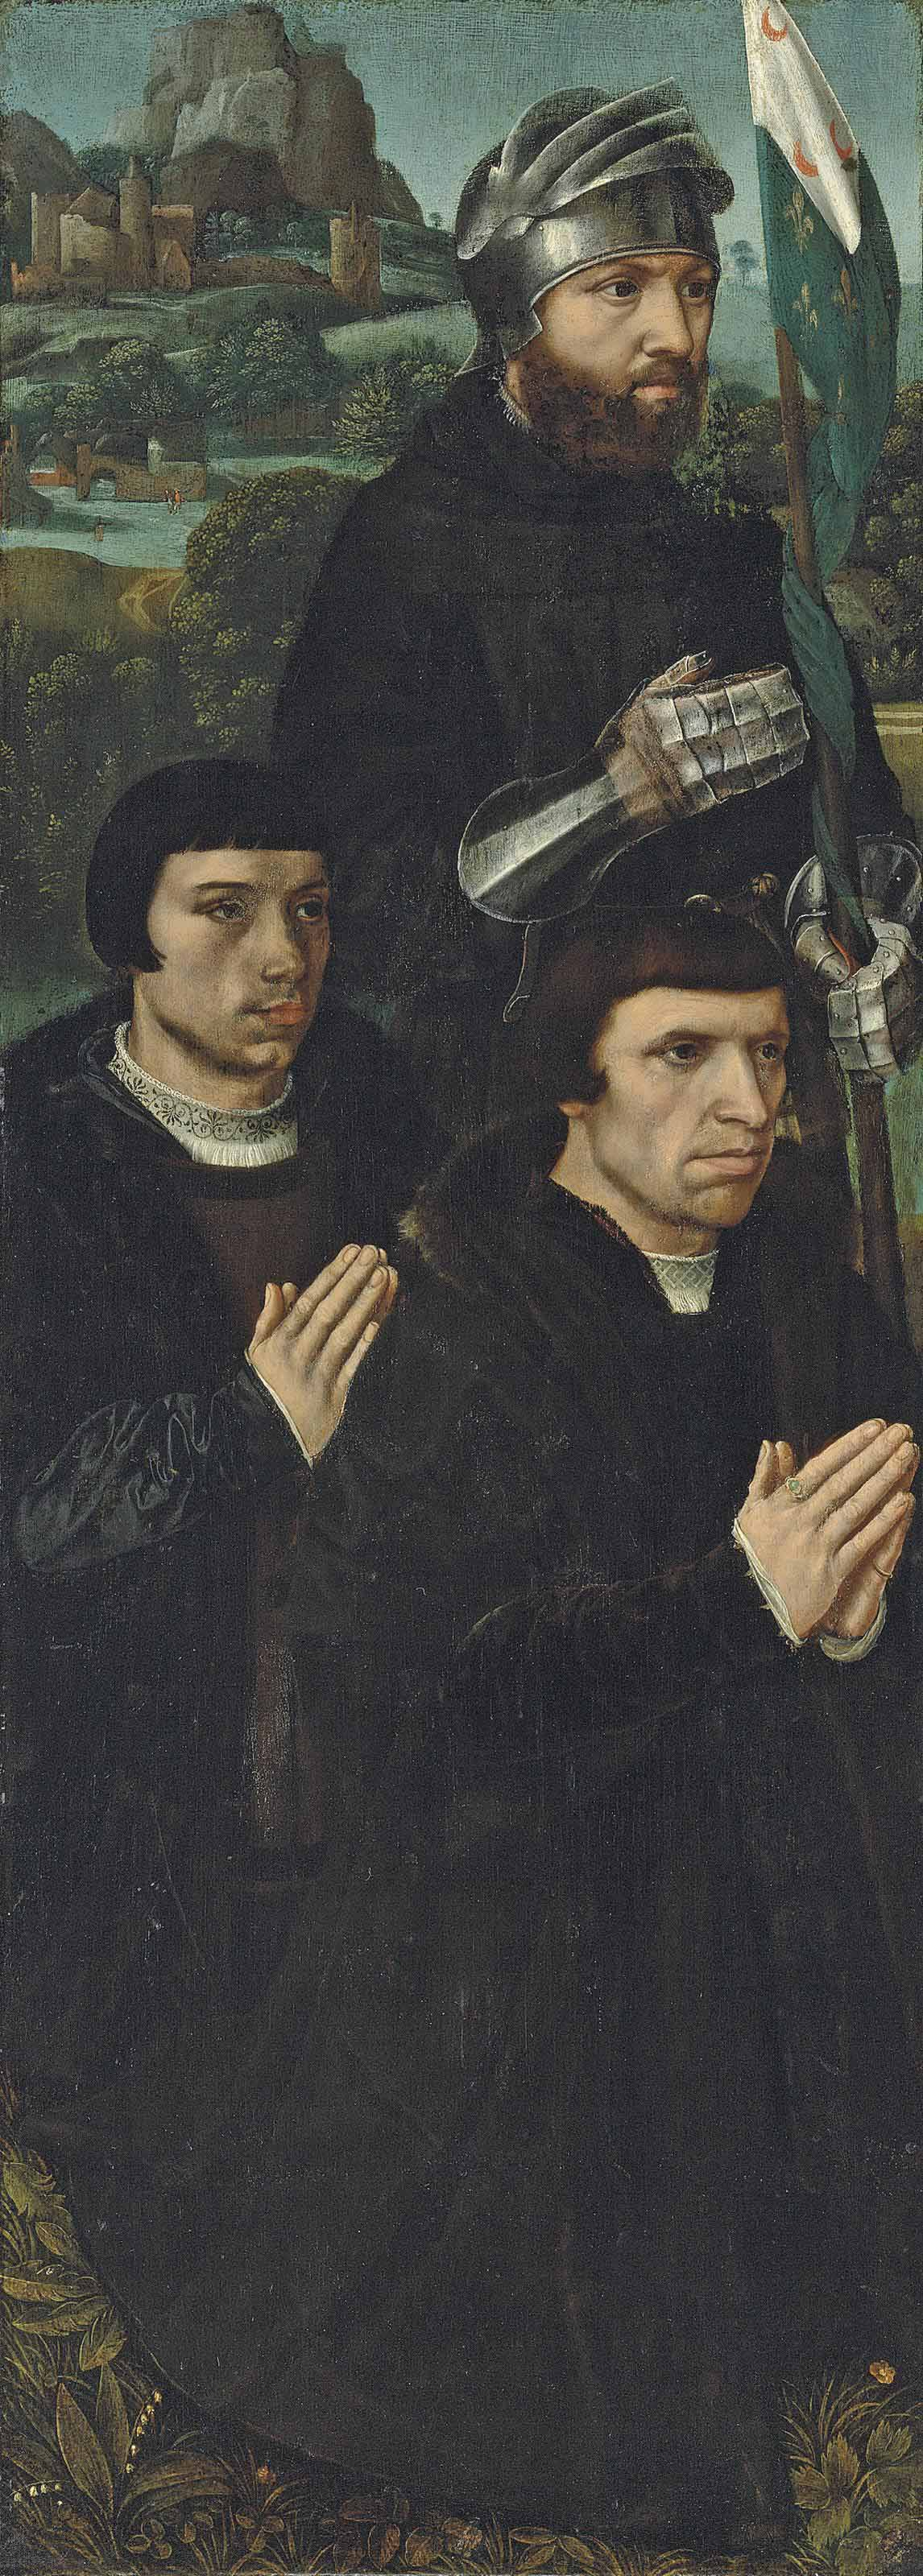 The left wing of a triptych: Saint William of Maleval with two kneeling donors